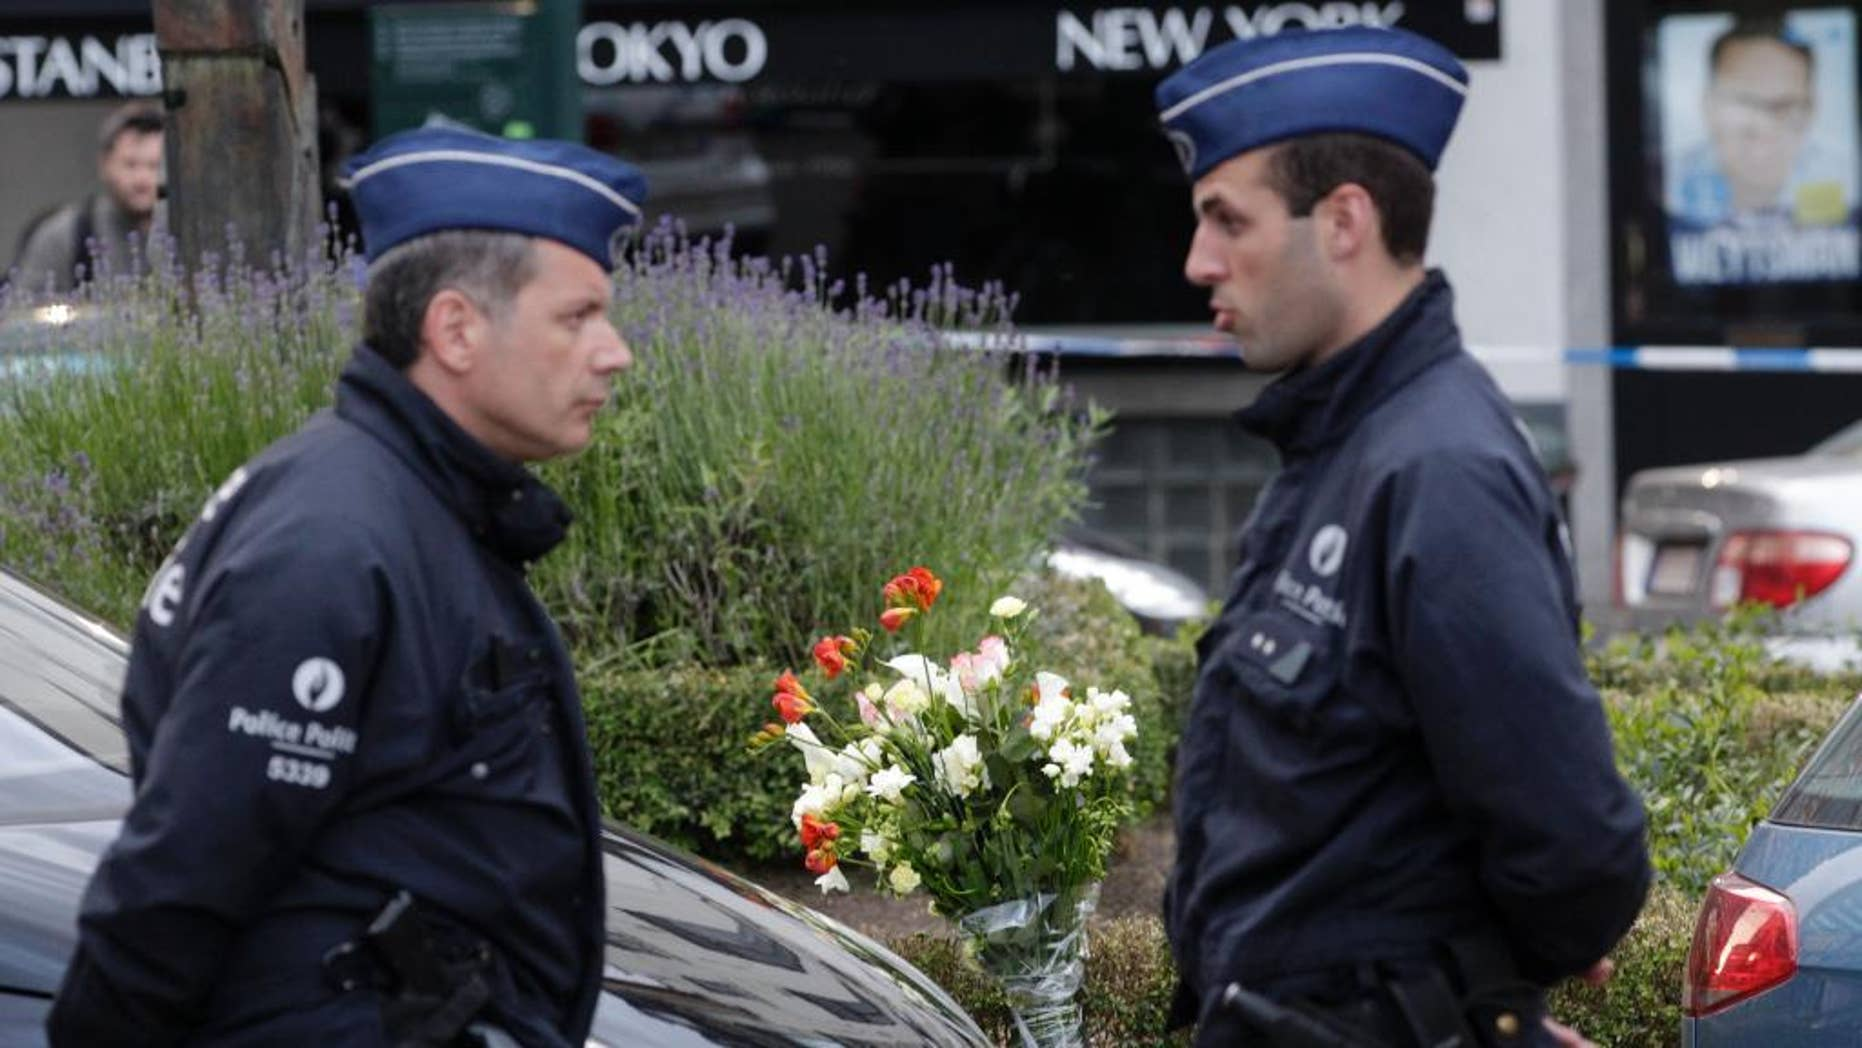 Some flowers were put close to the site of a shooting at the Jewish museum in Brussels, Saturday, May 24, 2014. Three people were killed and one seriously injured in a spree of gunfire at the Jewish Museum in Brussels on Saturday, officials said. The attack, which came on the eve of national and European Parliament elections, led officials to raise anti-terror measures.(AP Photo/Yves Logghe)